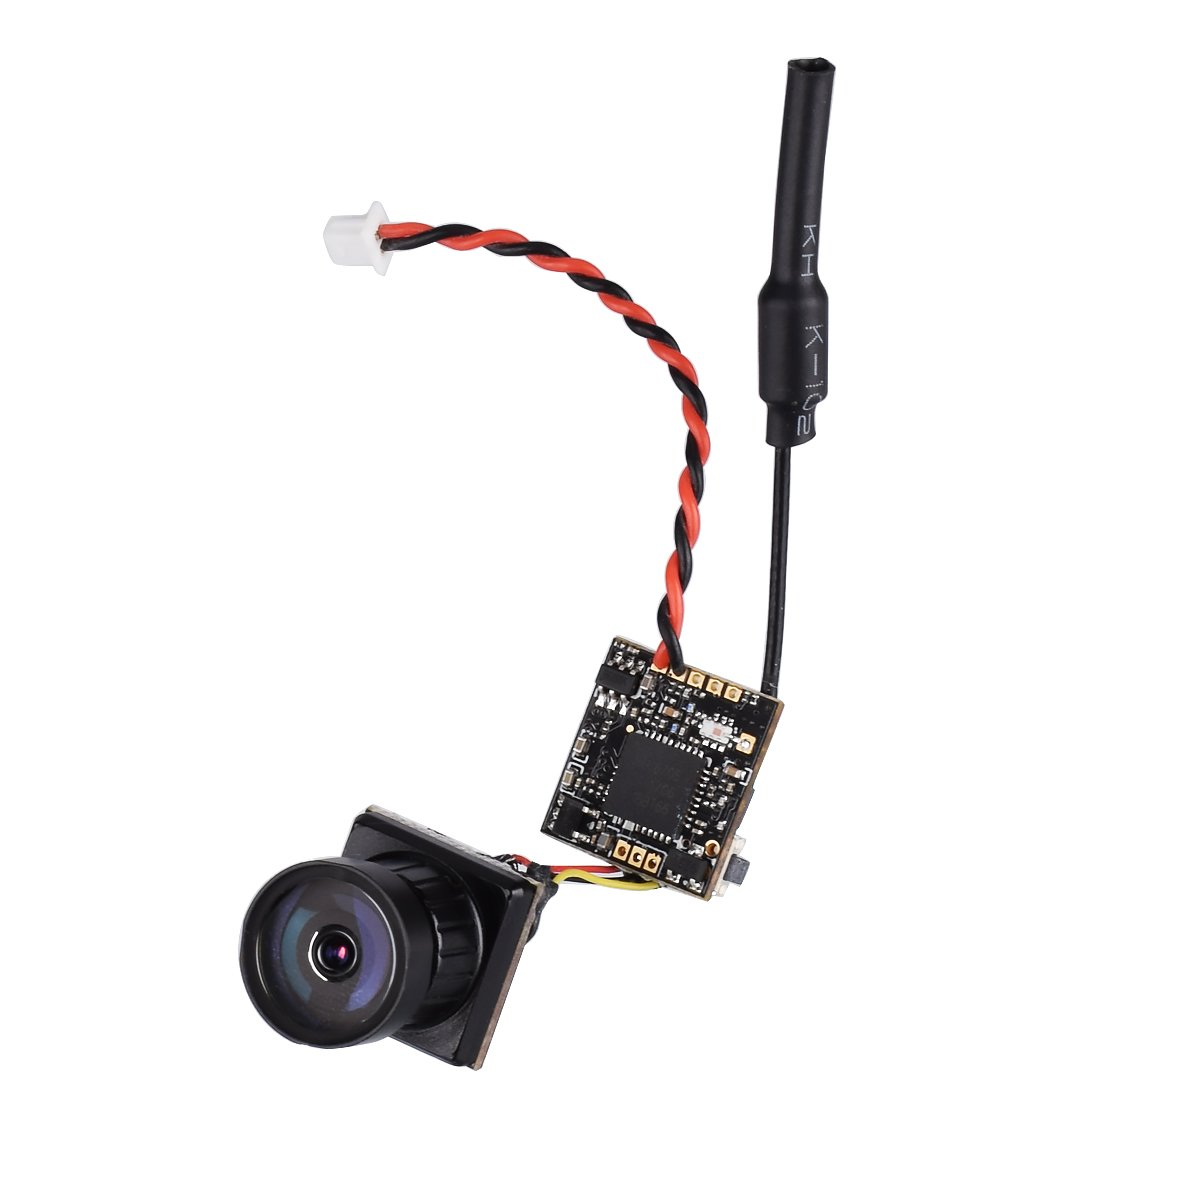 "Caddx Firefly 1/3"" CMOS 1200TVL 2.1mm Lens FPV Camera(4:3)"